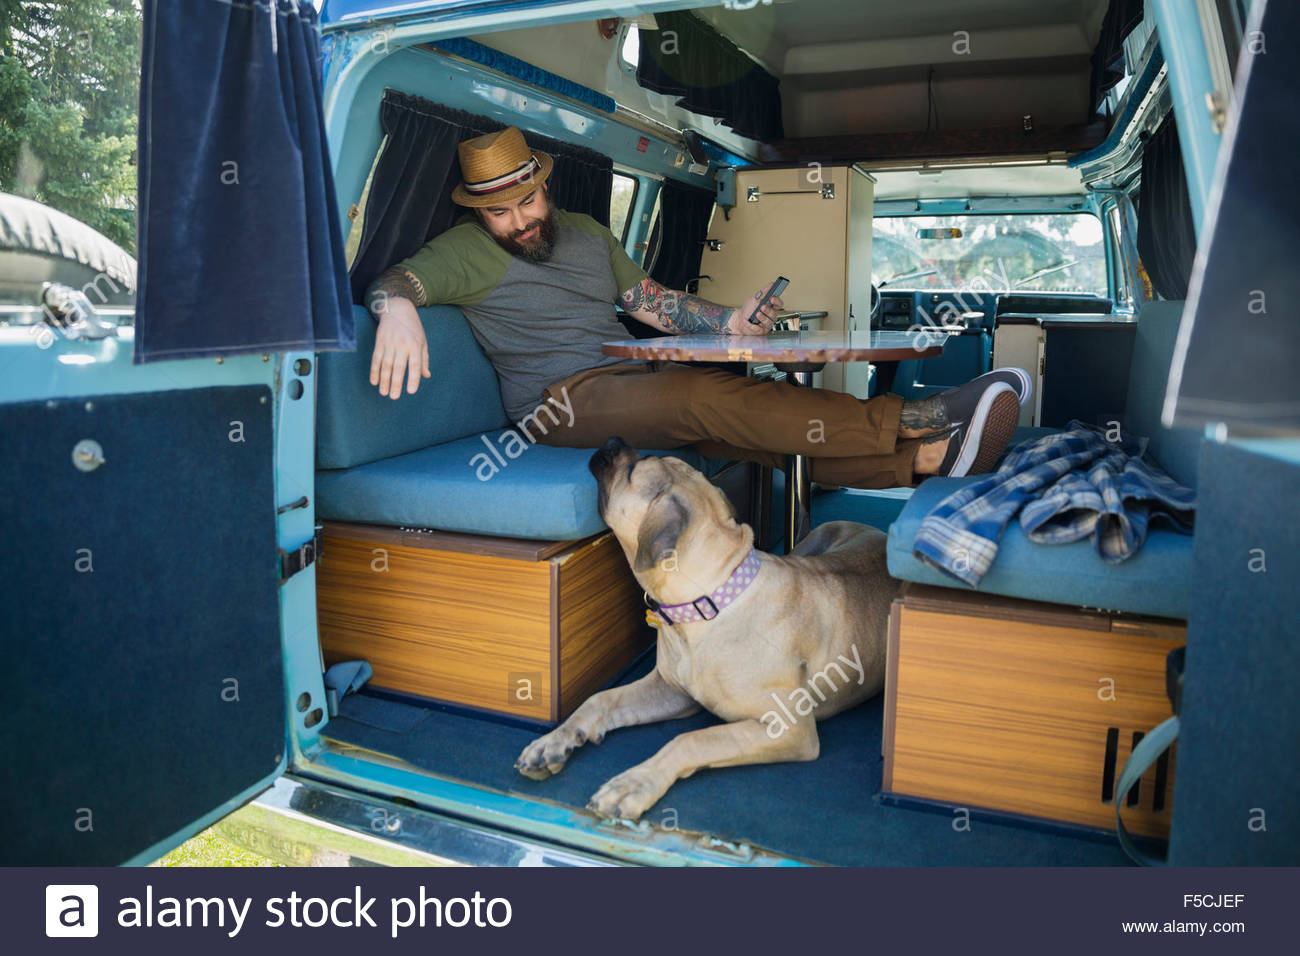 Man relaxing with dog in camper van stock image